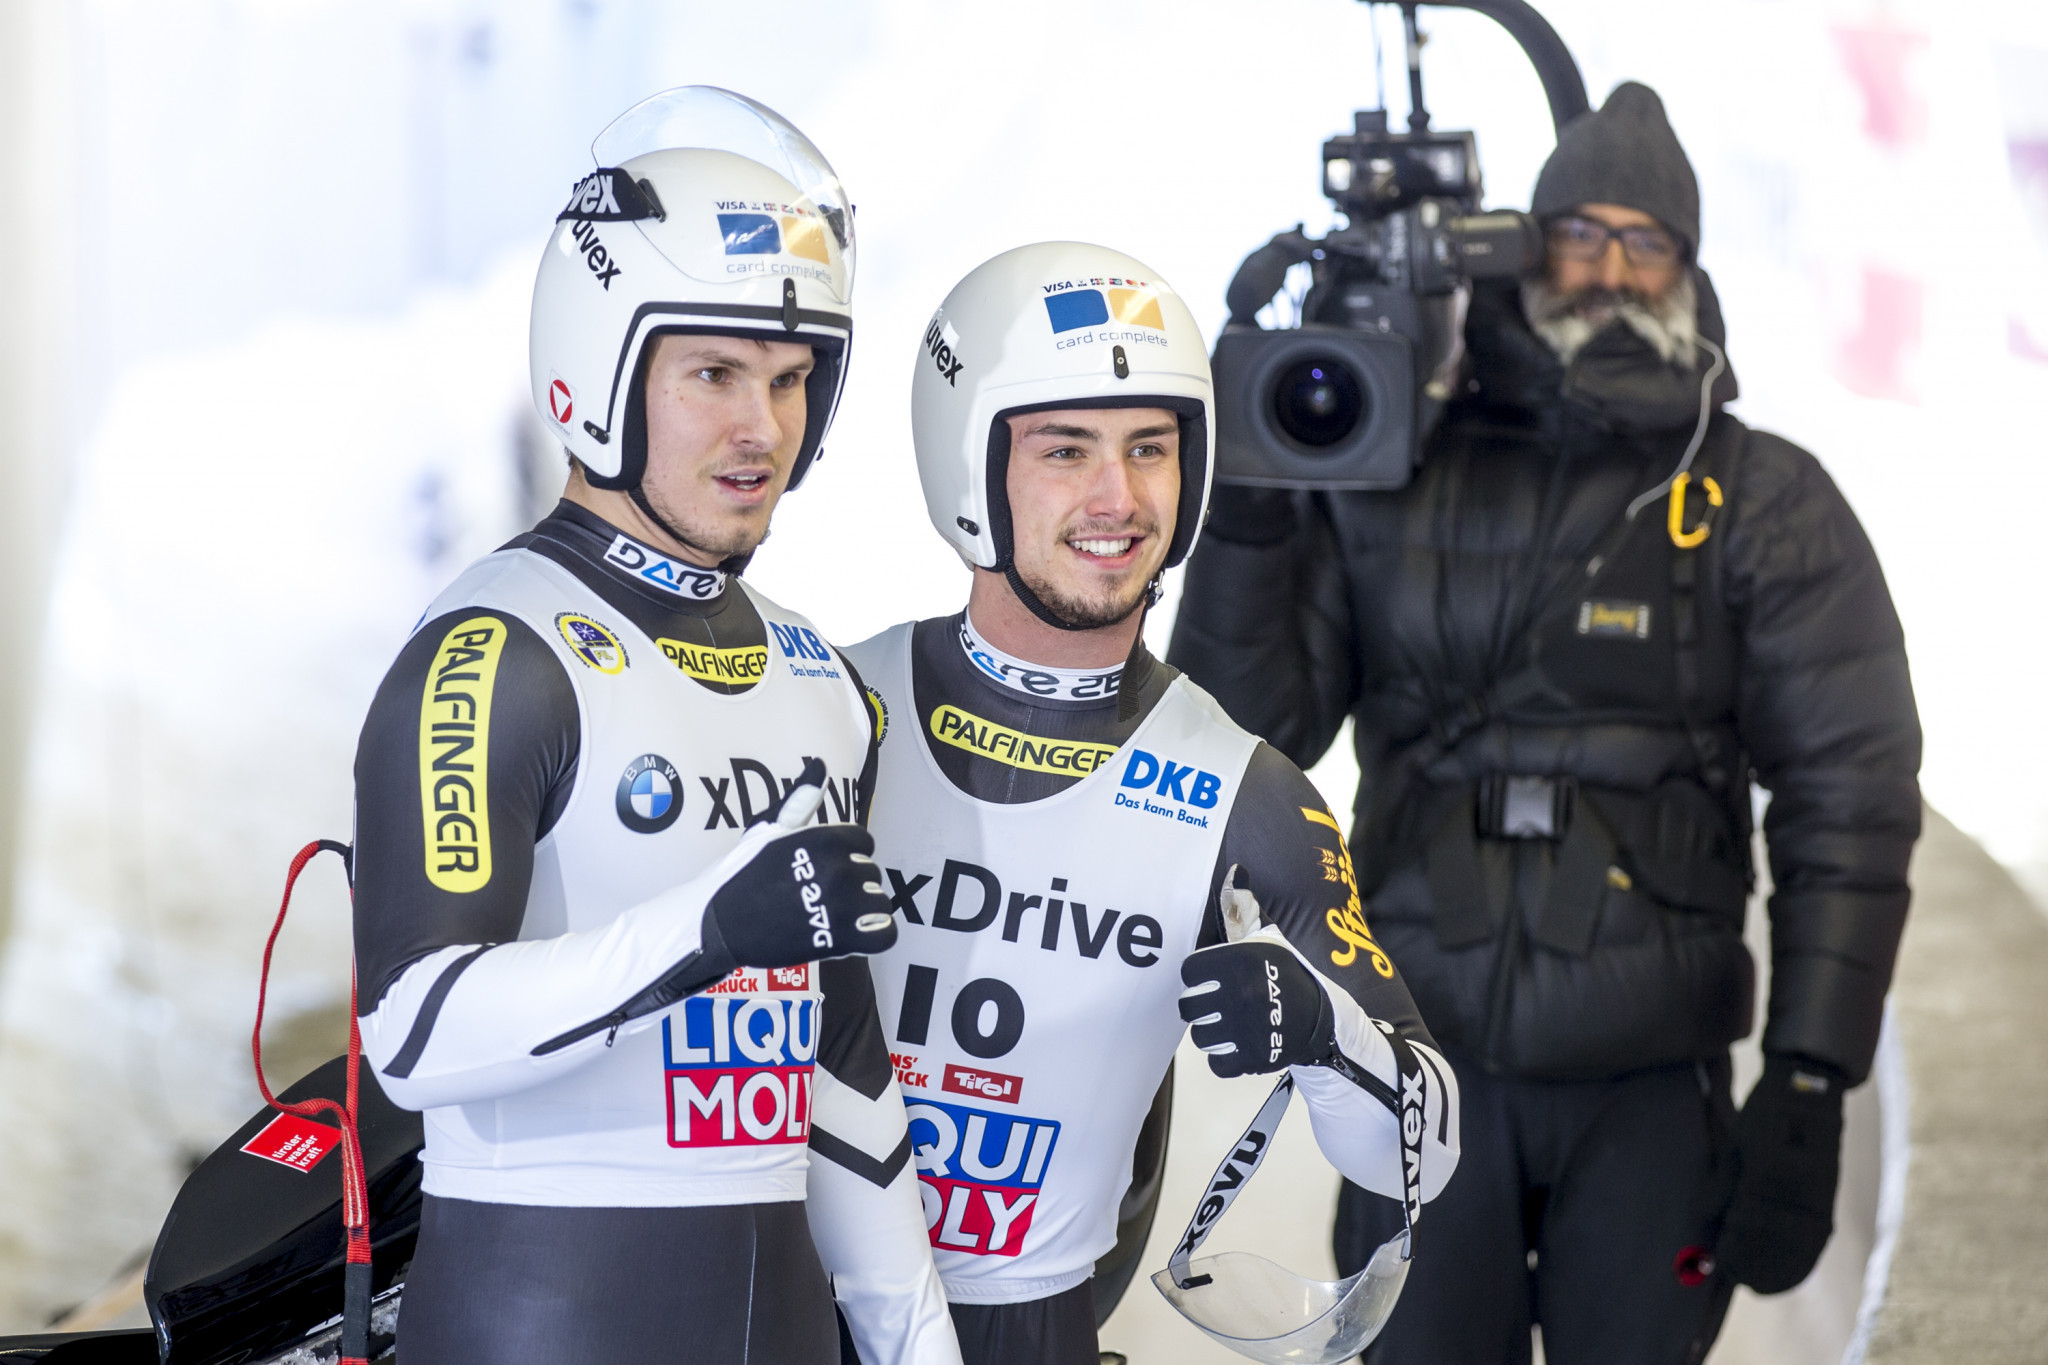 Austria's Thomas Steu and Lorenz Koller are currently in the lead in the doubles event of the Luge World Cup ©Getty Images